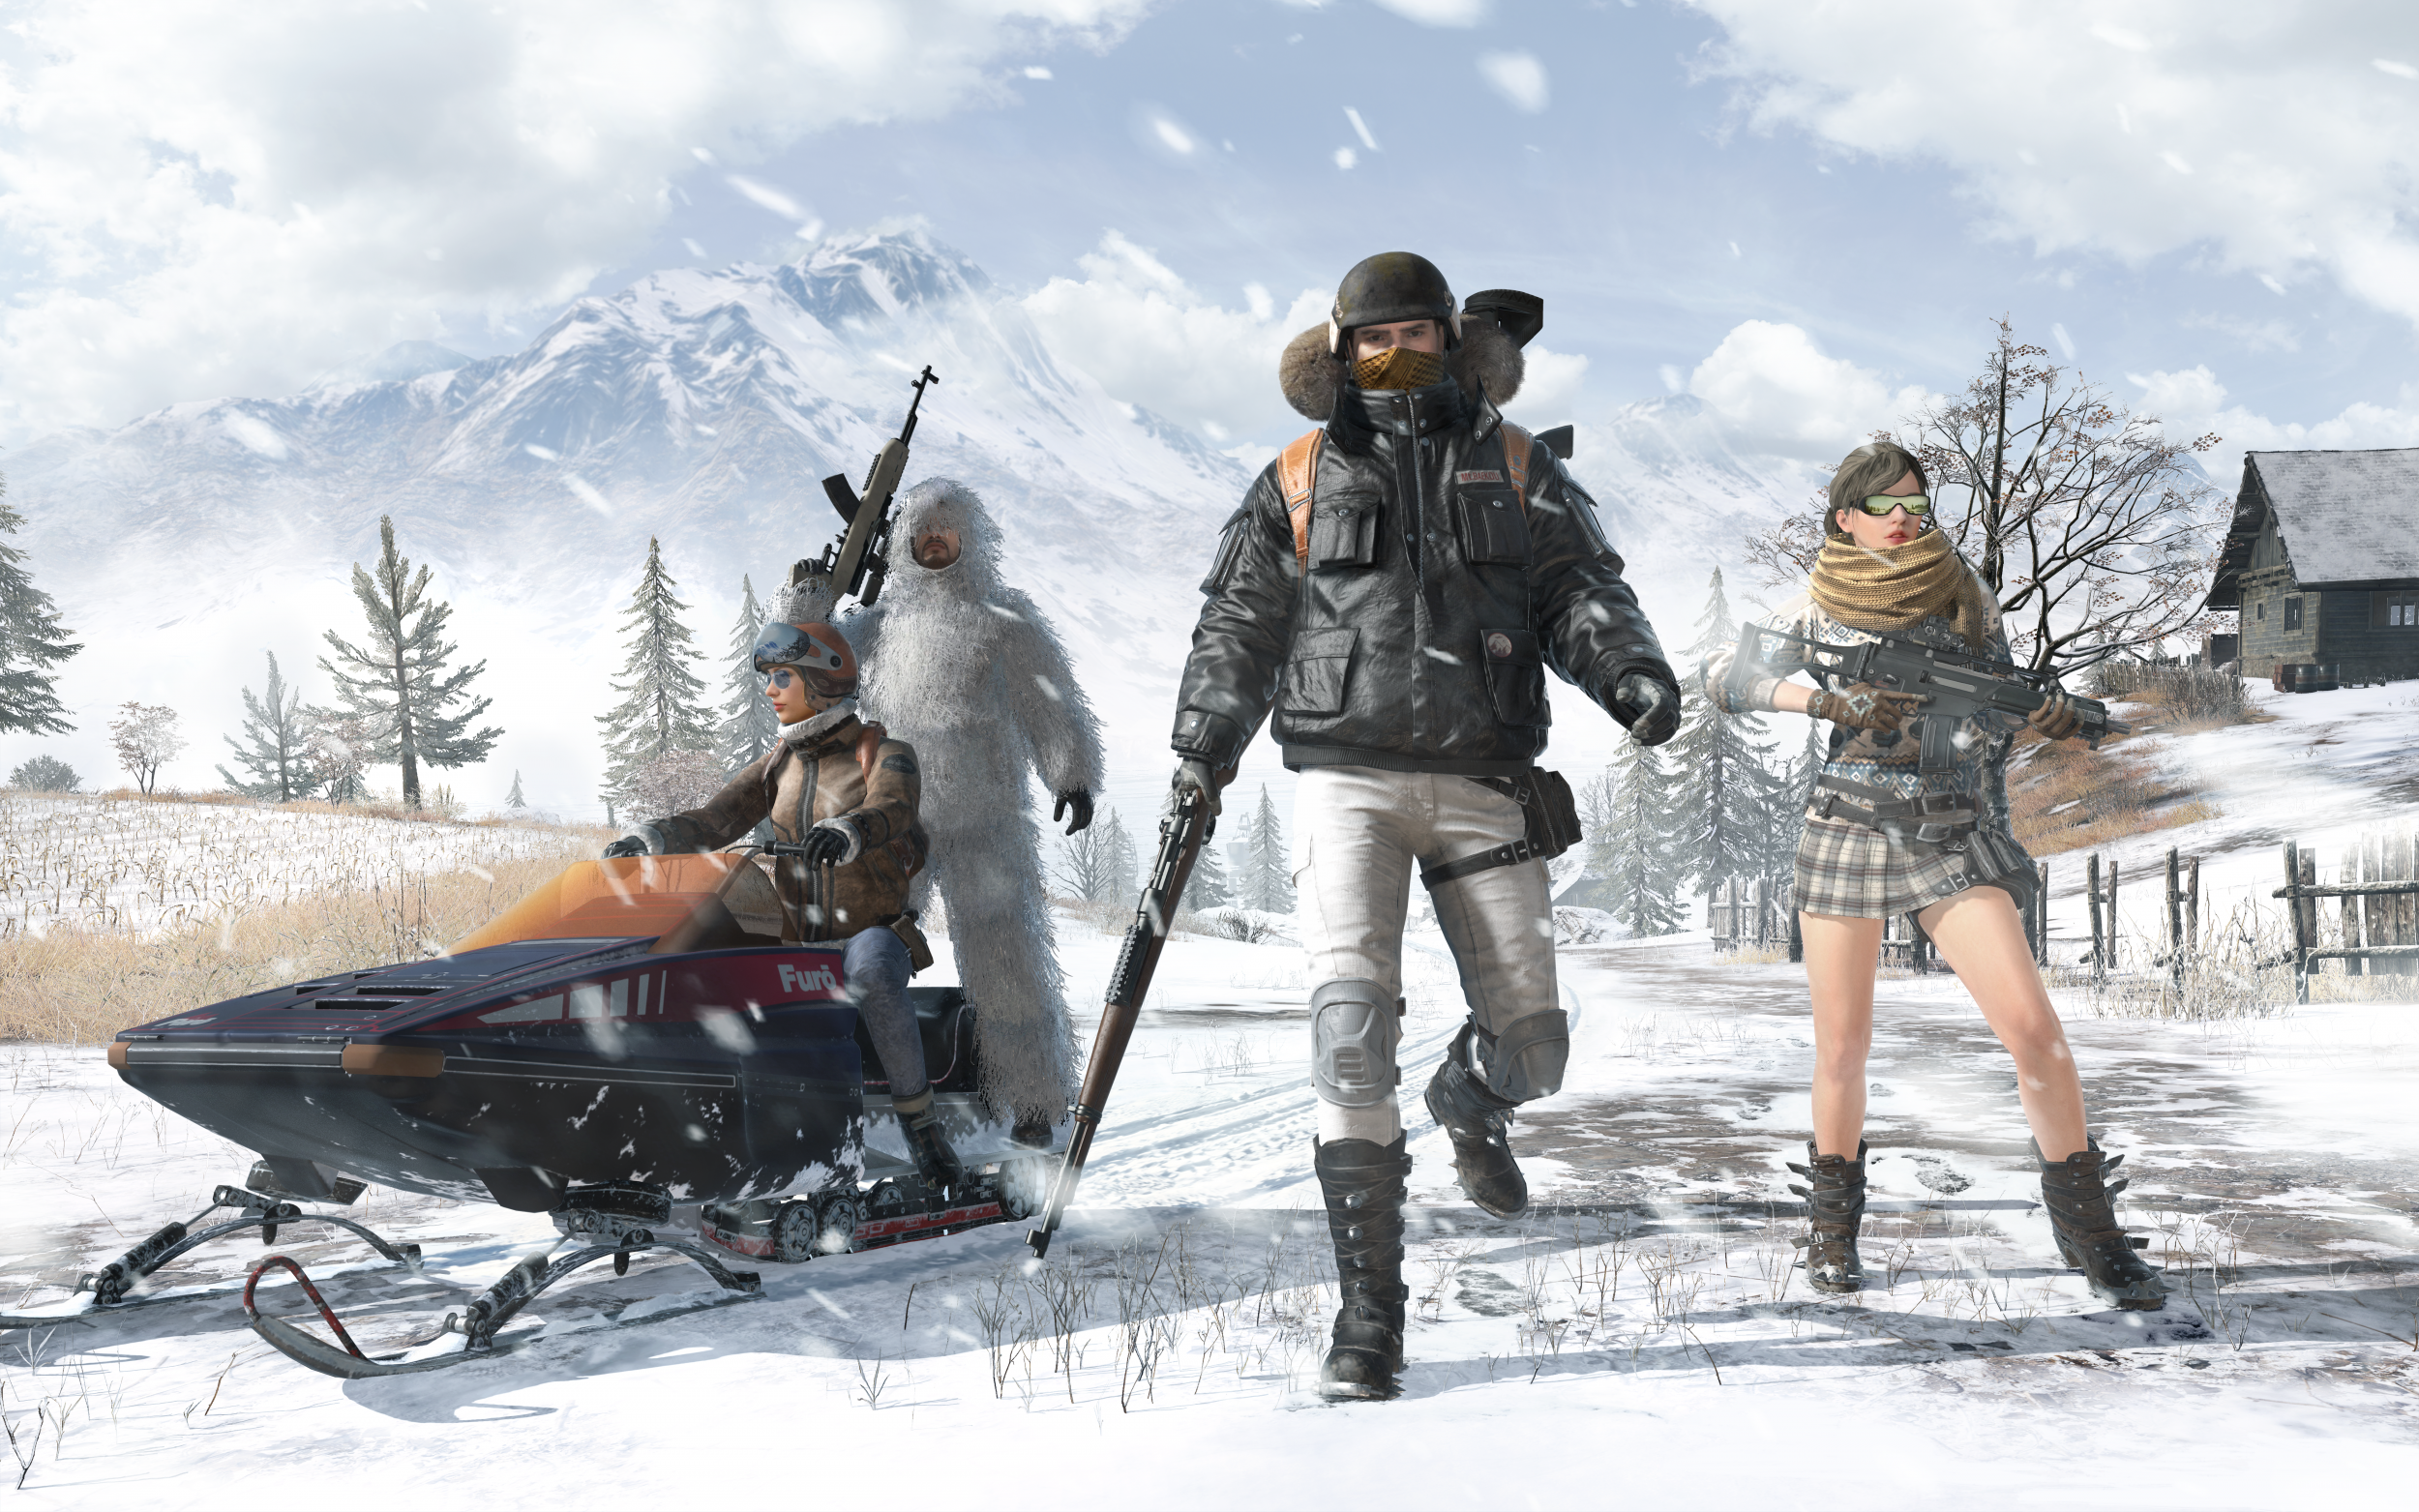 Pubg Vikendi Wallpapers: 'PUBG' Devs Discuss Crossplay Plans, Vikendi & Tips For